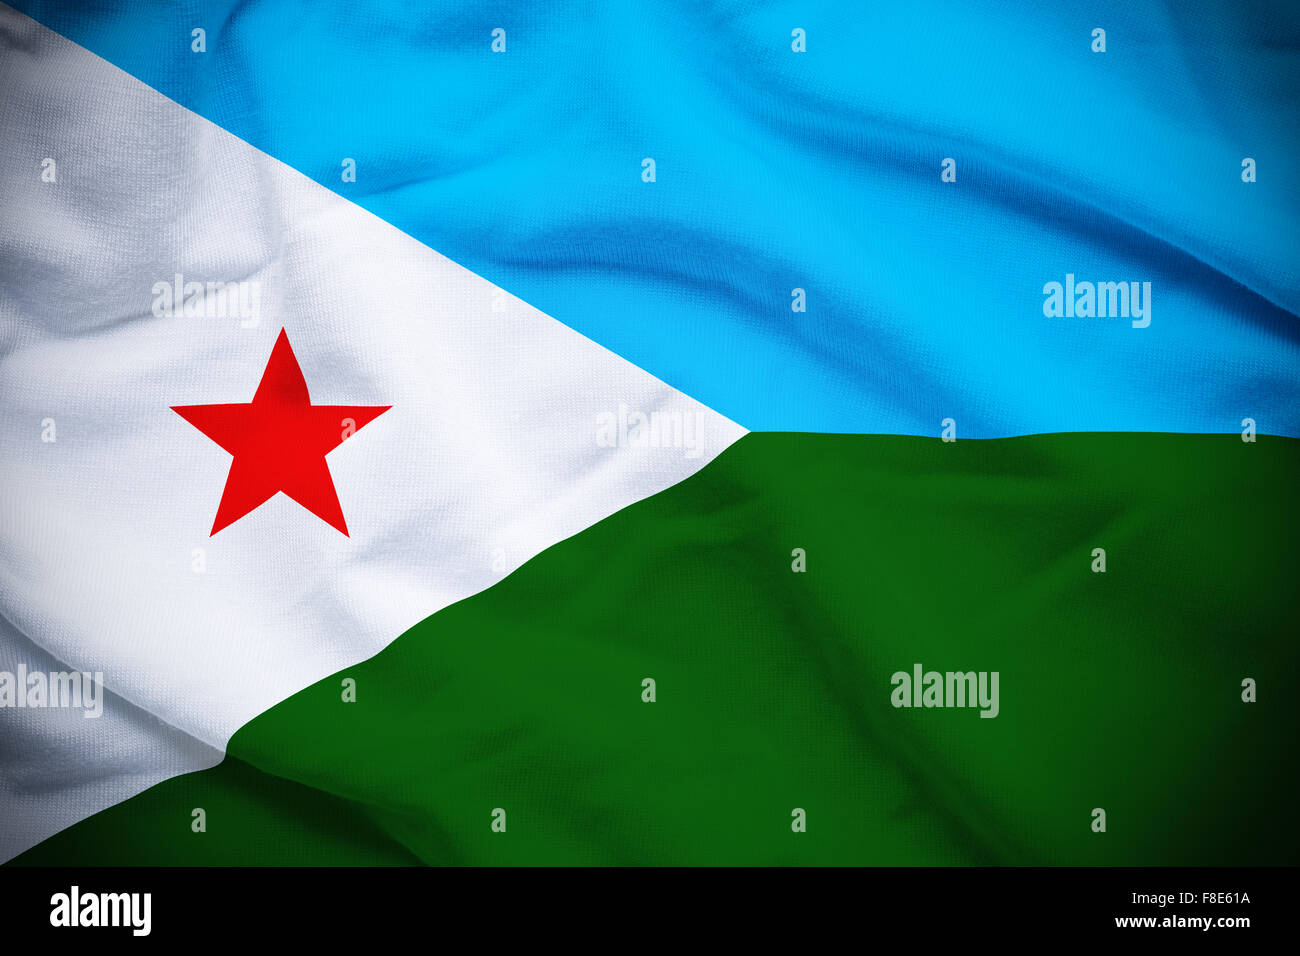 Wavy and rippled national flag of Djibouti background. - Stock Image